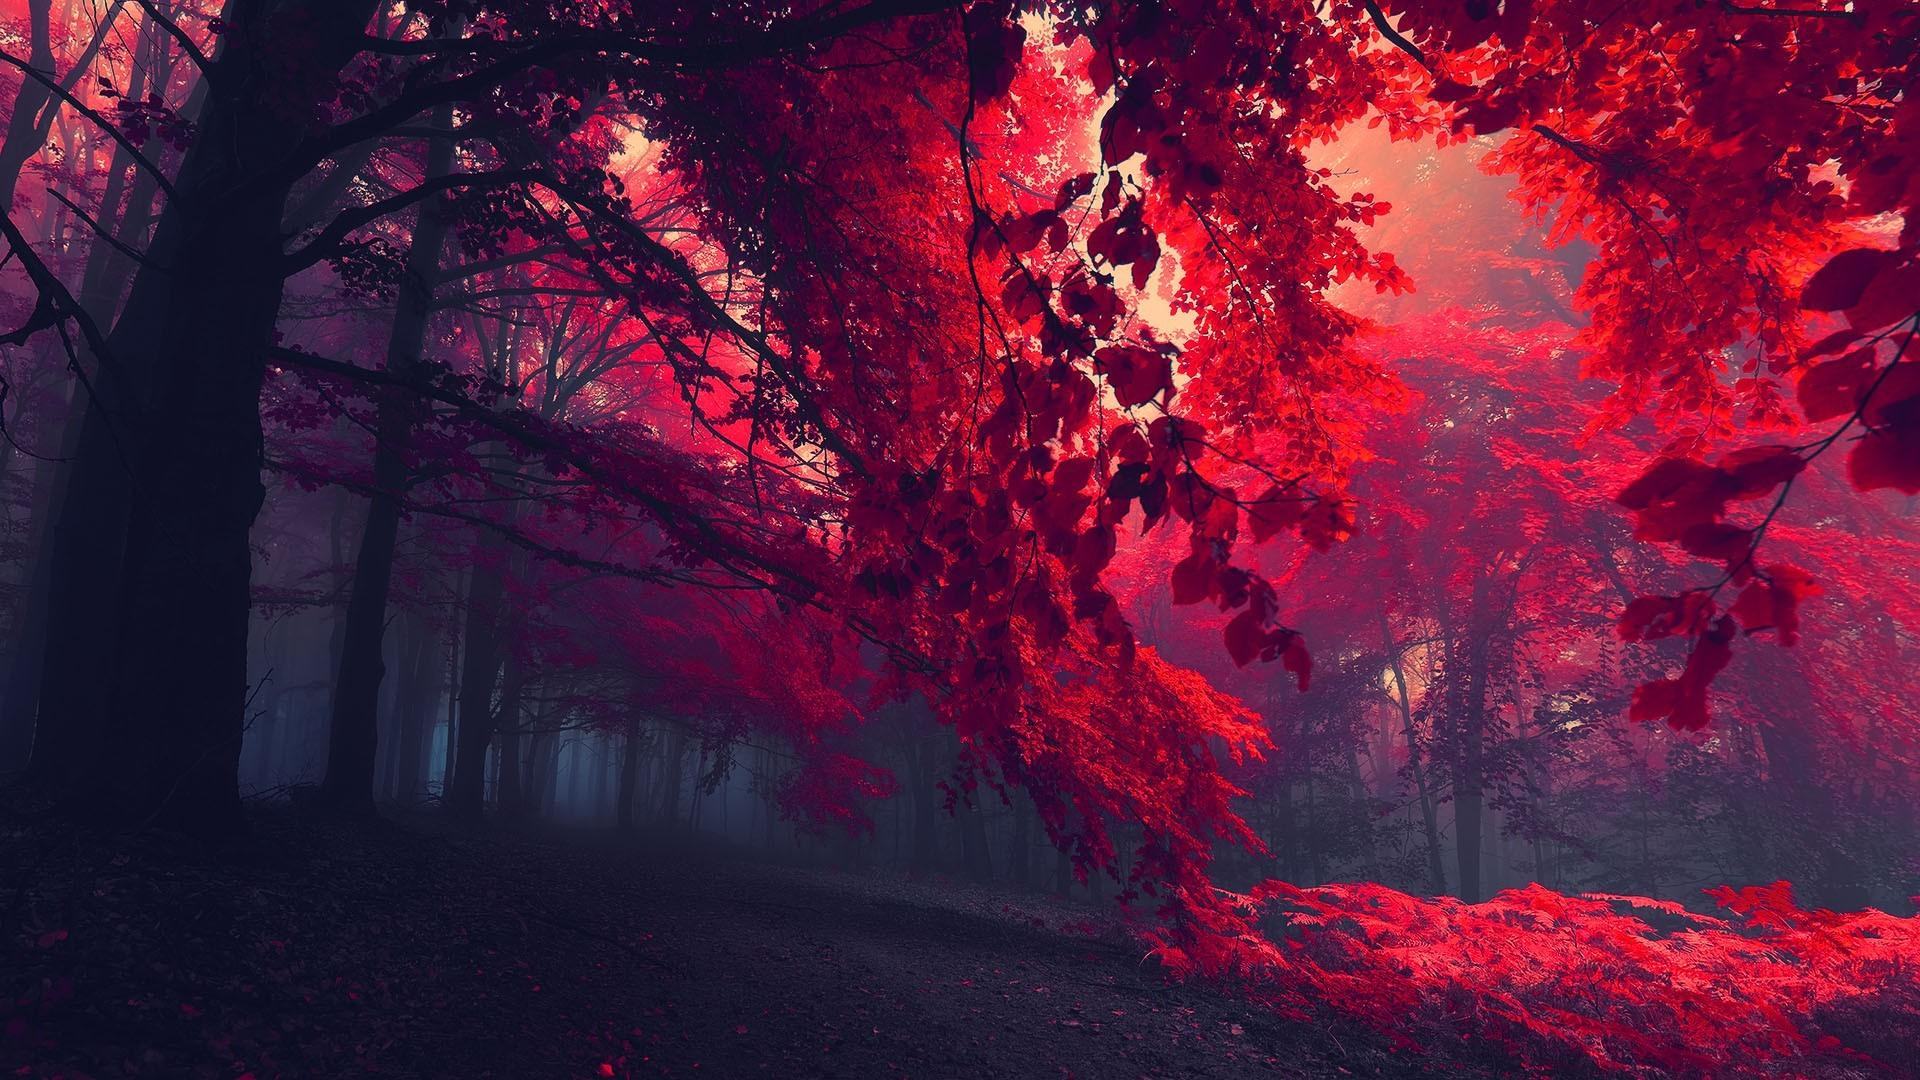 Red And Black 4k Ultra Hd Nature Wallpapers Top Free Red